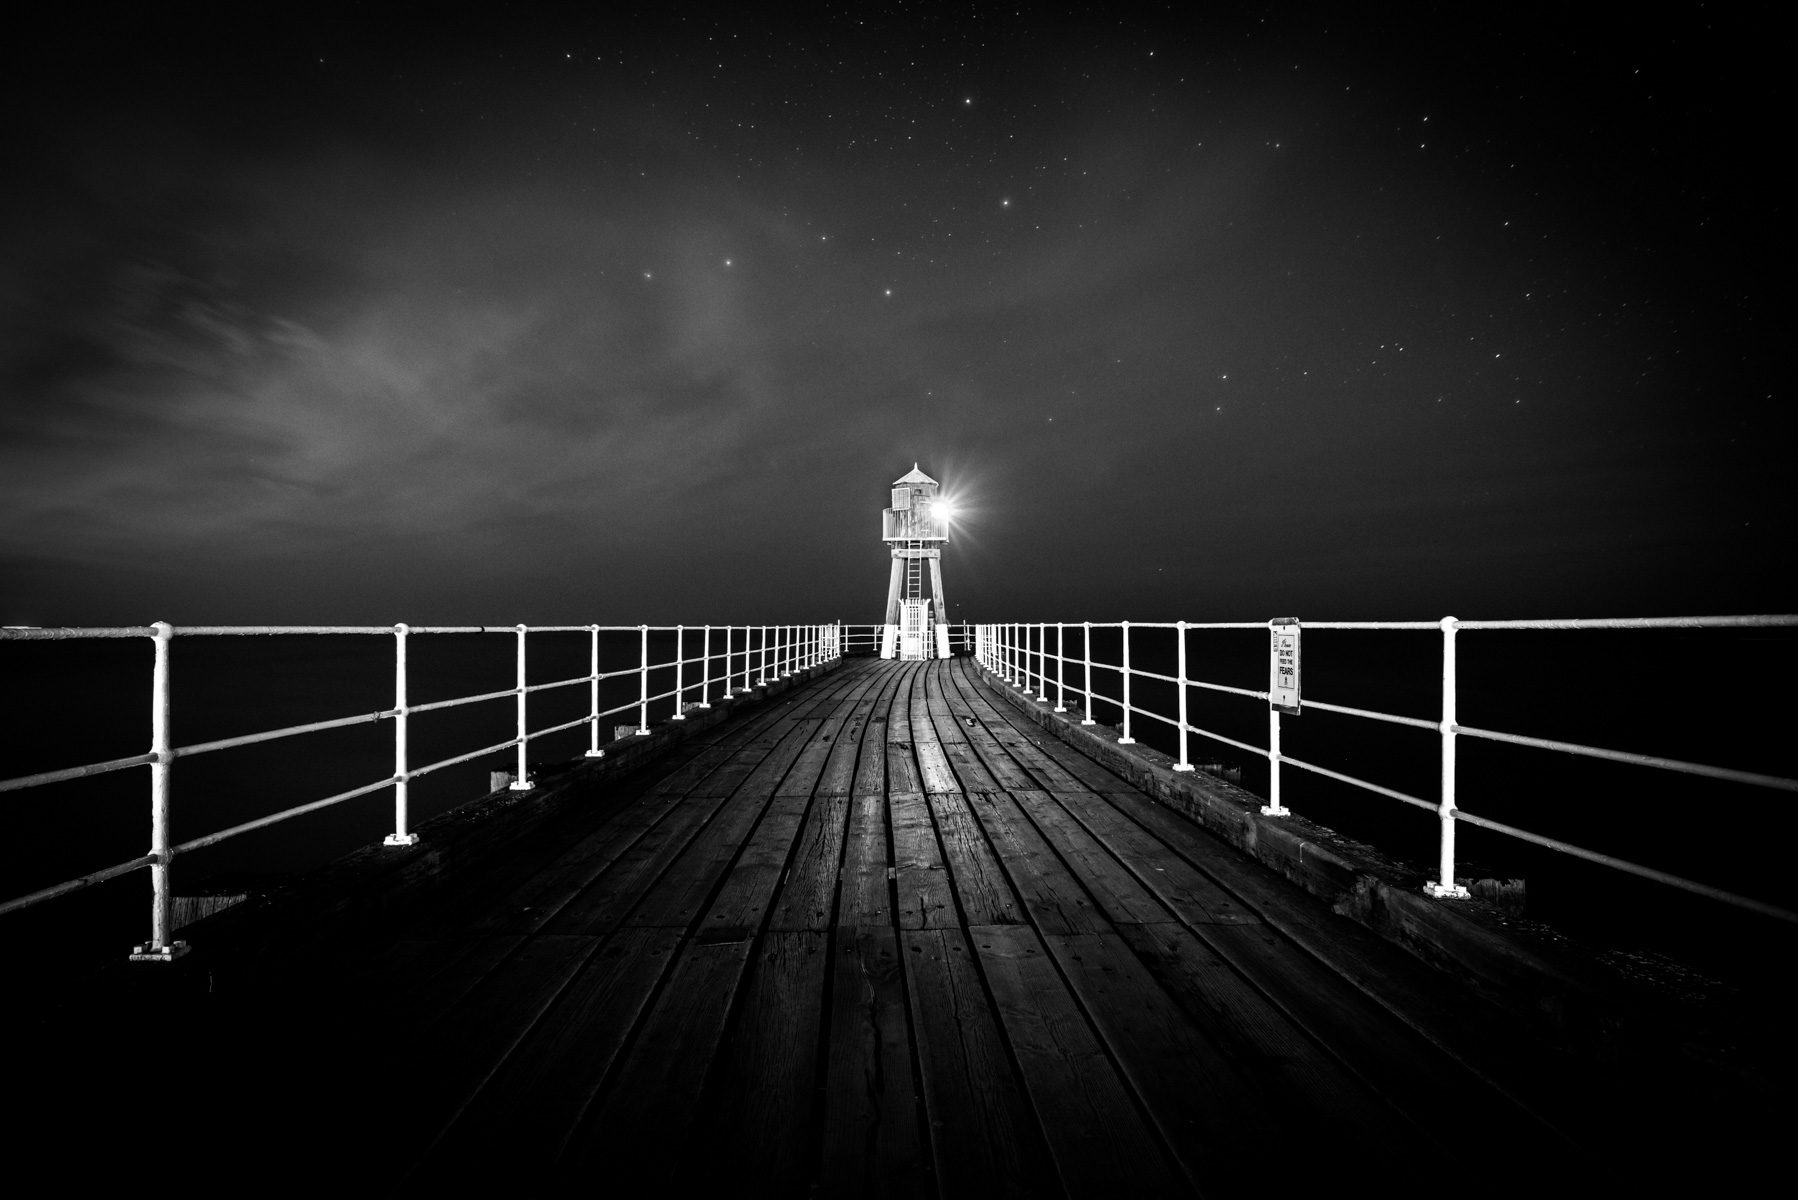 M-zz-Whitby-Pier-at-Night-T177-copy.jpg